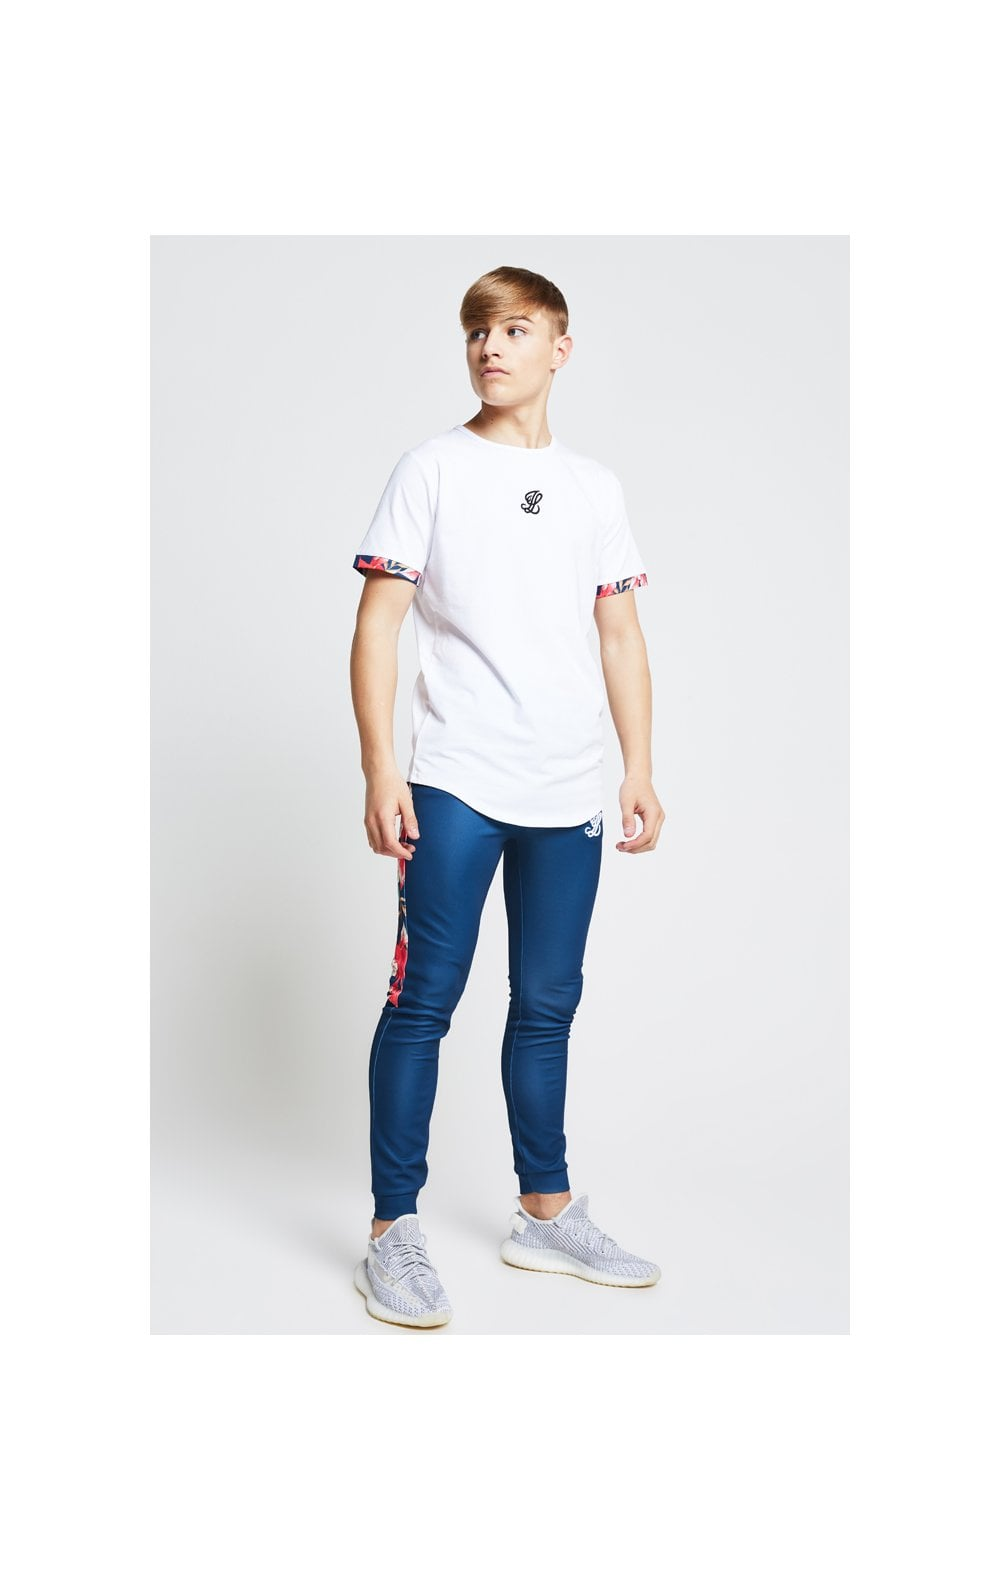 Illusive London Contrast Cuff Tee – White & Tropical Leaf (3)